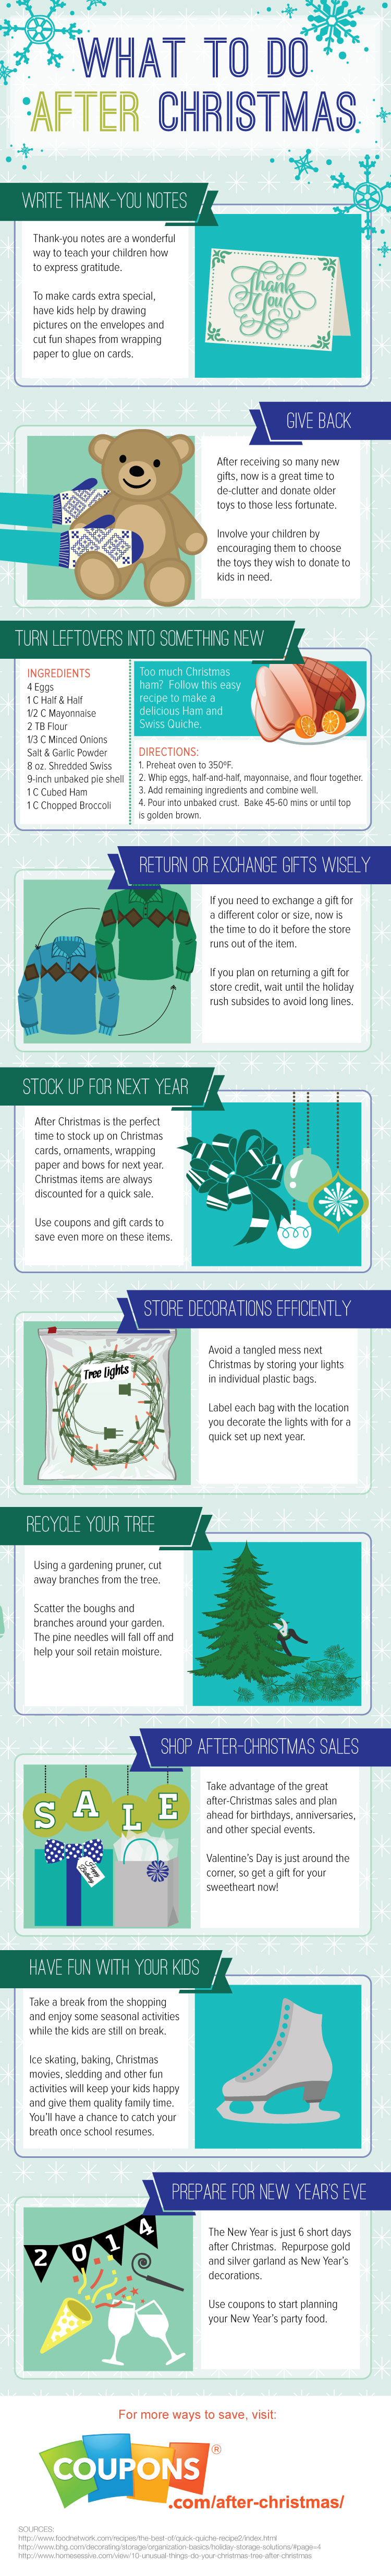 After-Christmas-Infographic